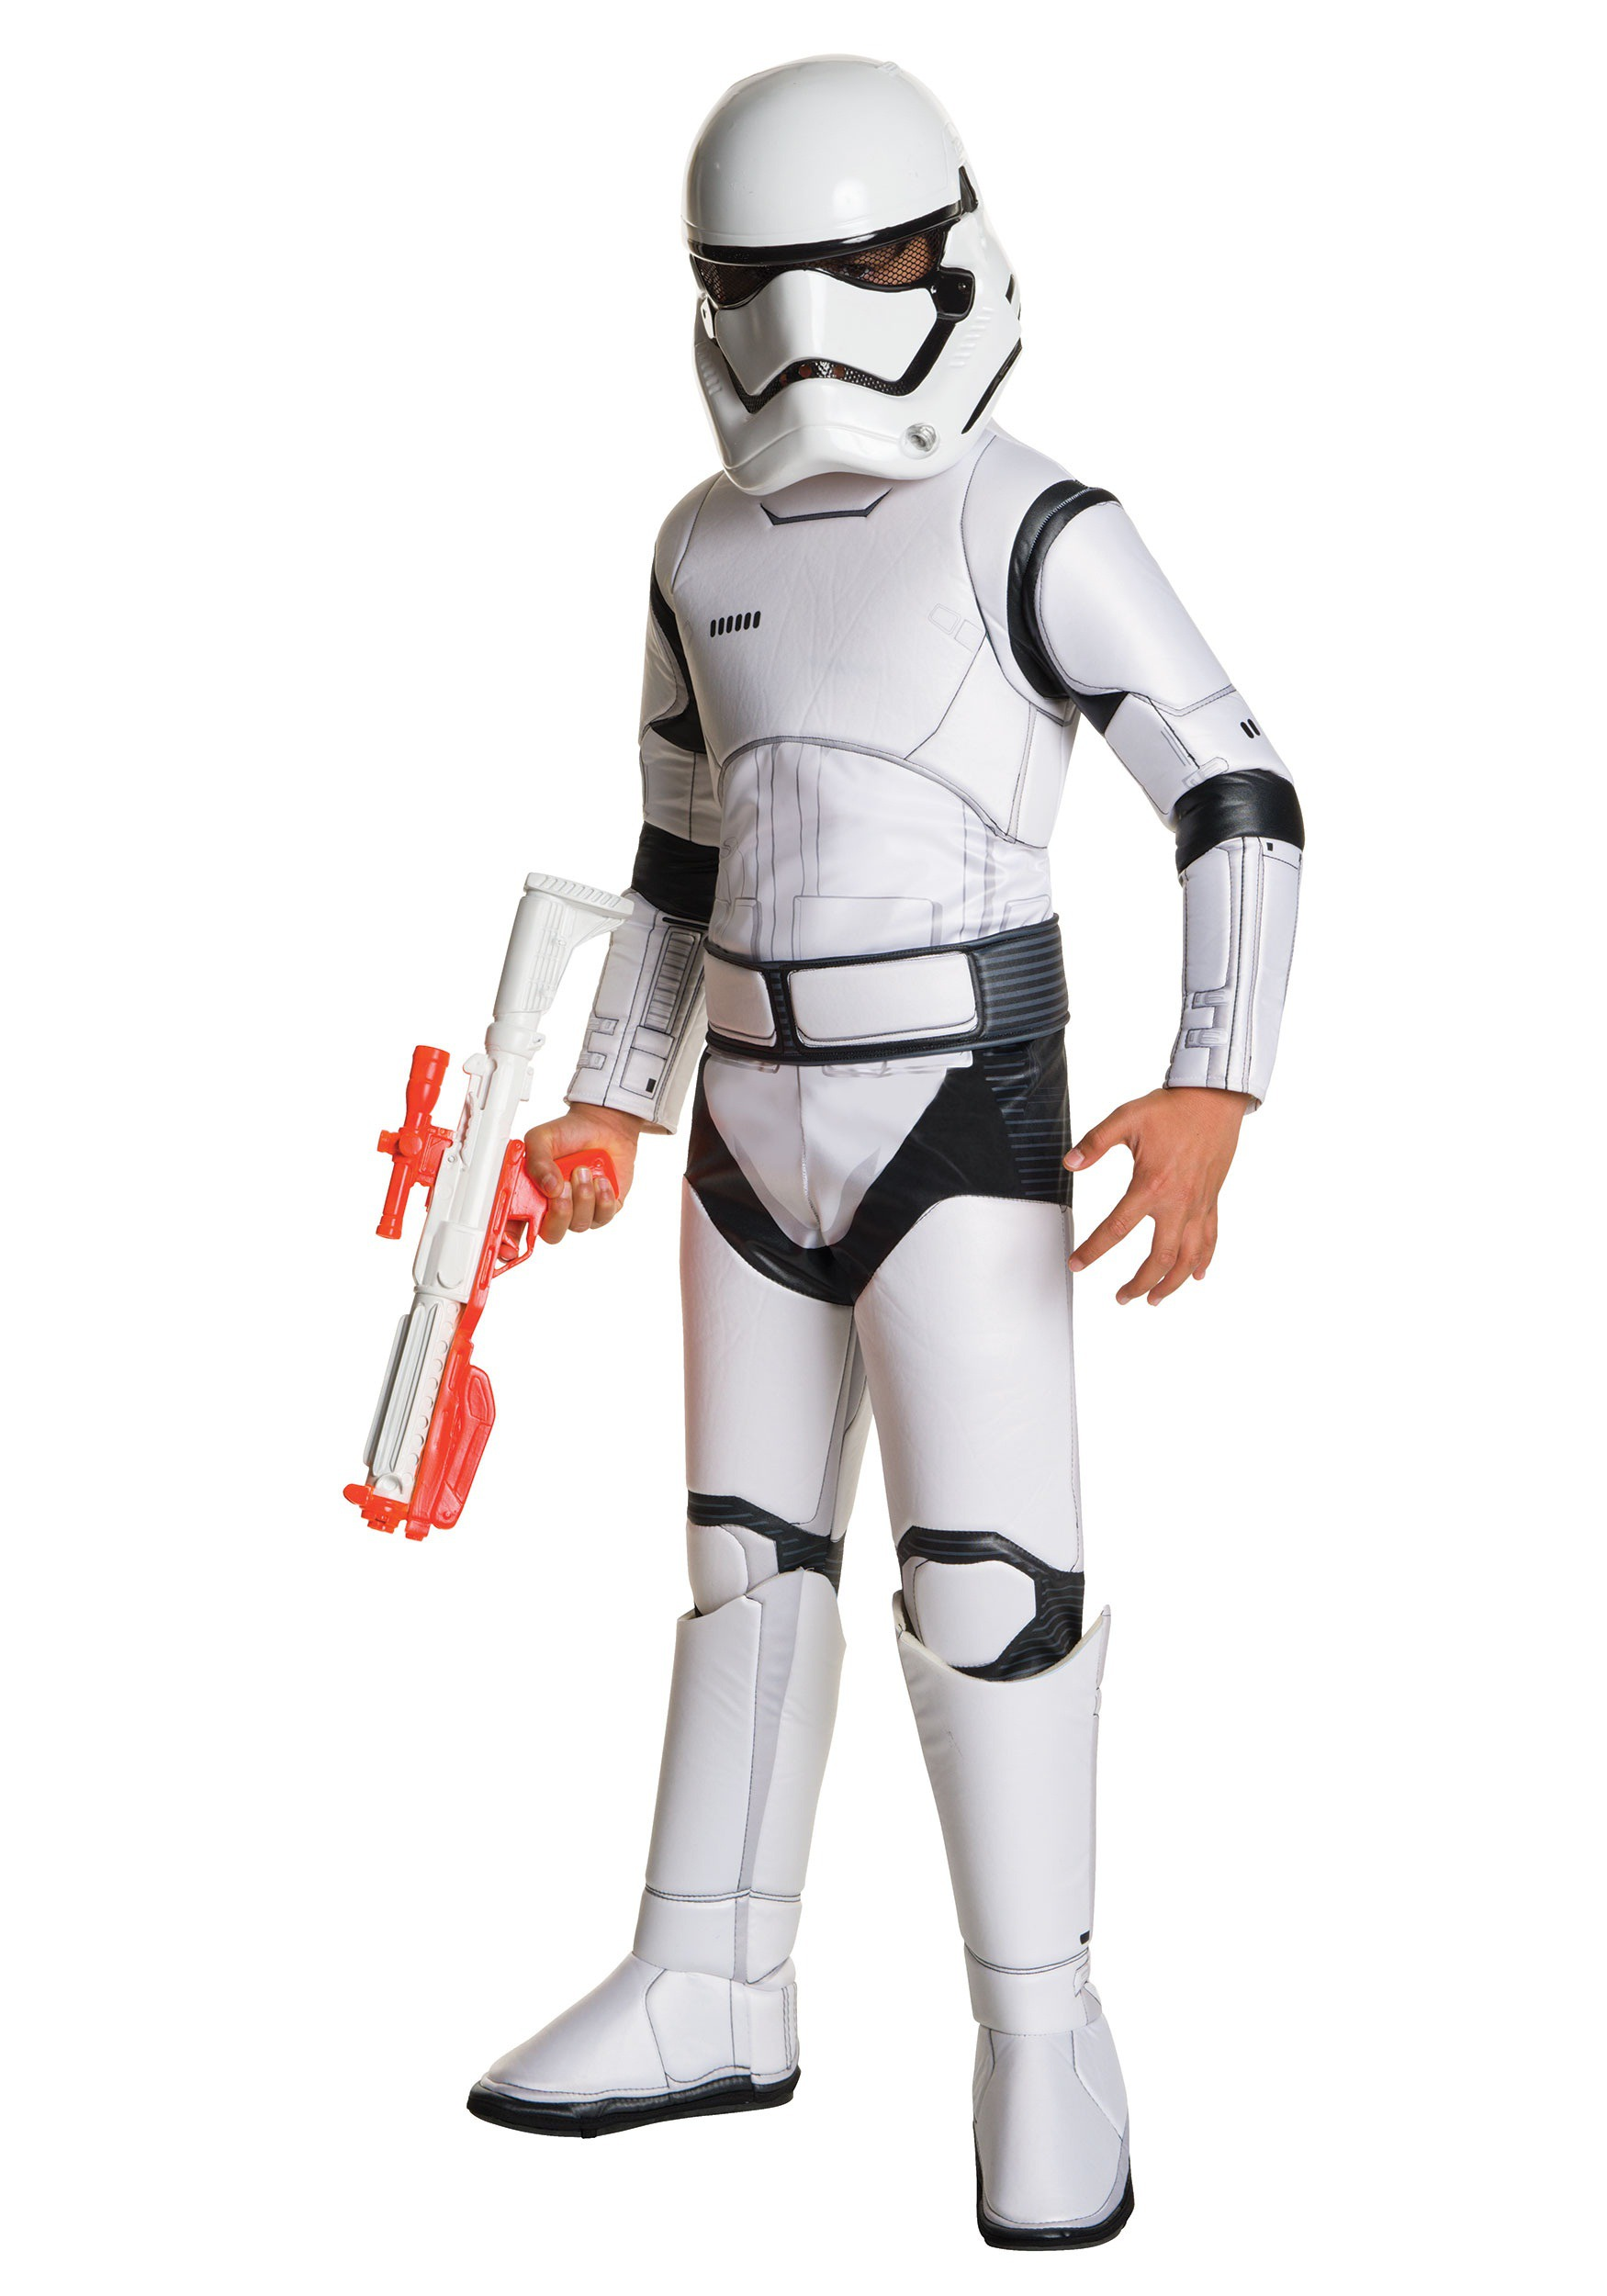 Child Deluxe Star Wars Ep. 7 Stormtrooper Costume  sc 1 st  Halloween Costumes & Child Super Deluxe Star Wars TFA Stormtrooper Costume